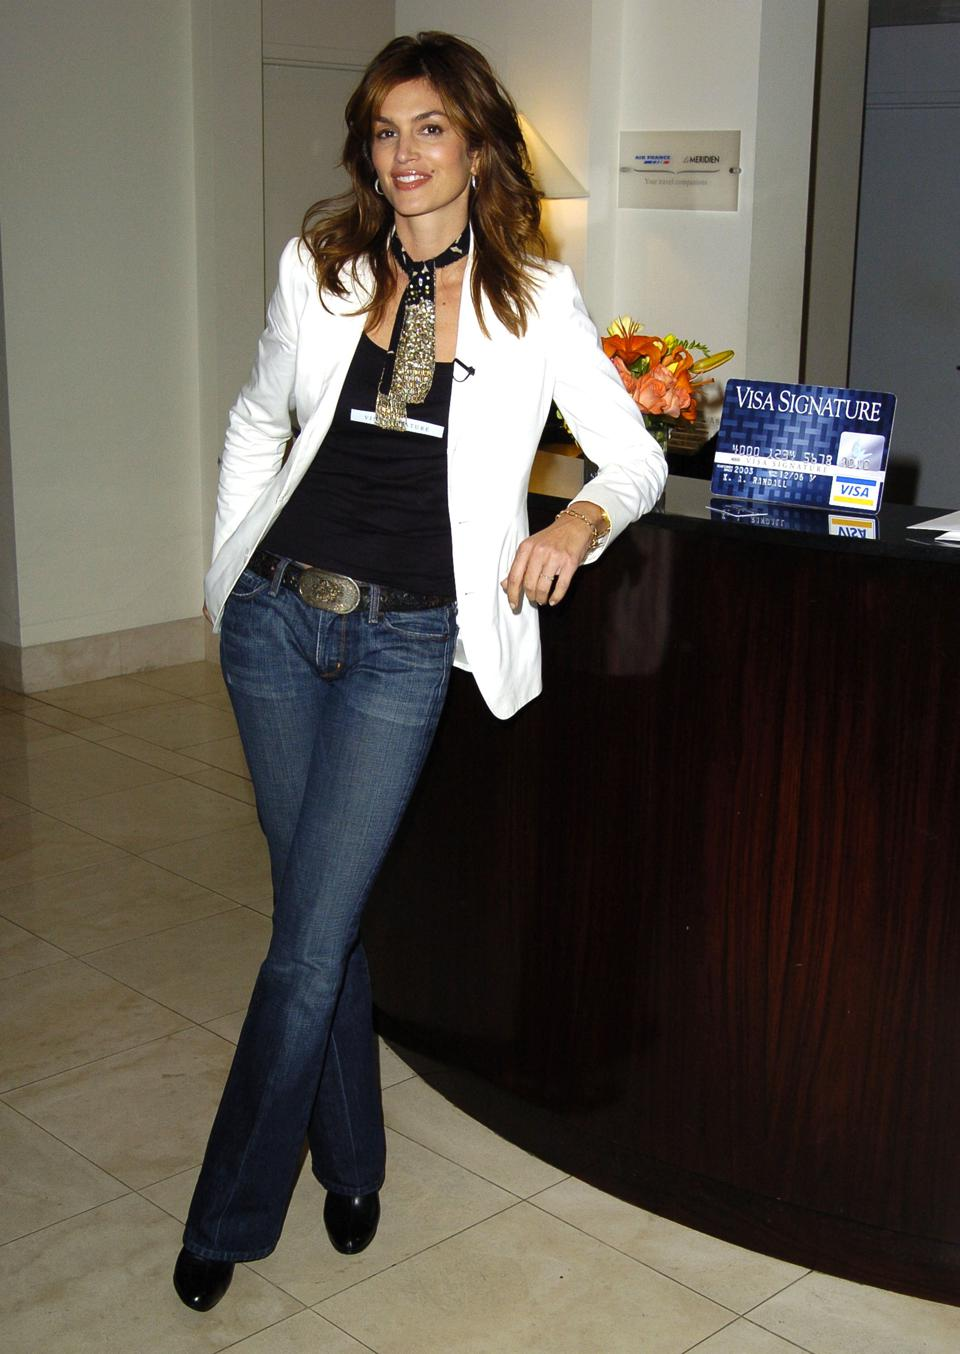 Cindy Crawford Visits The Le Meridian Hotel  to Promote The Visa Signature Card